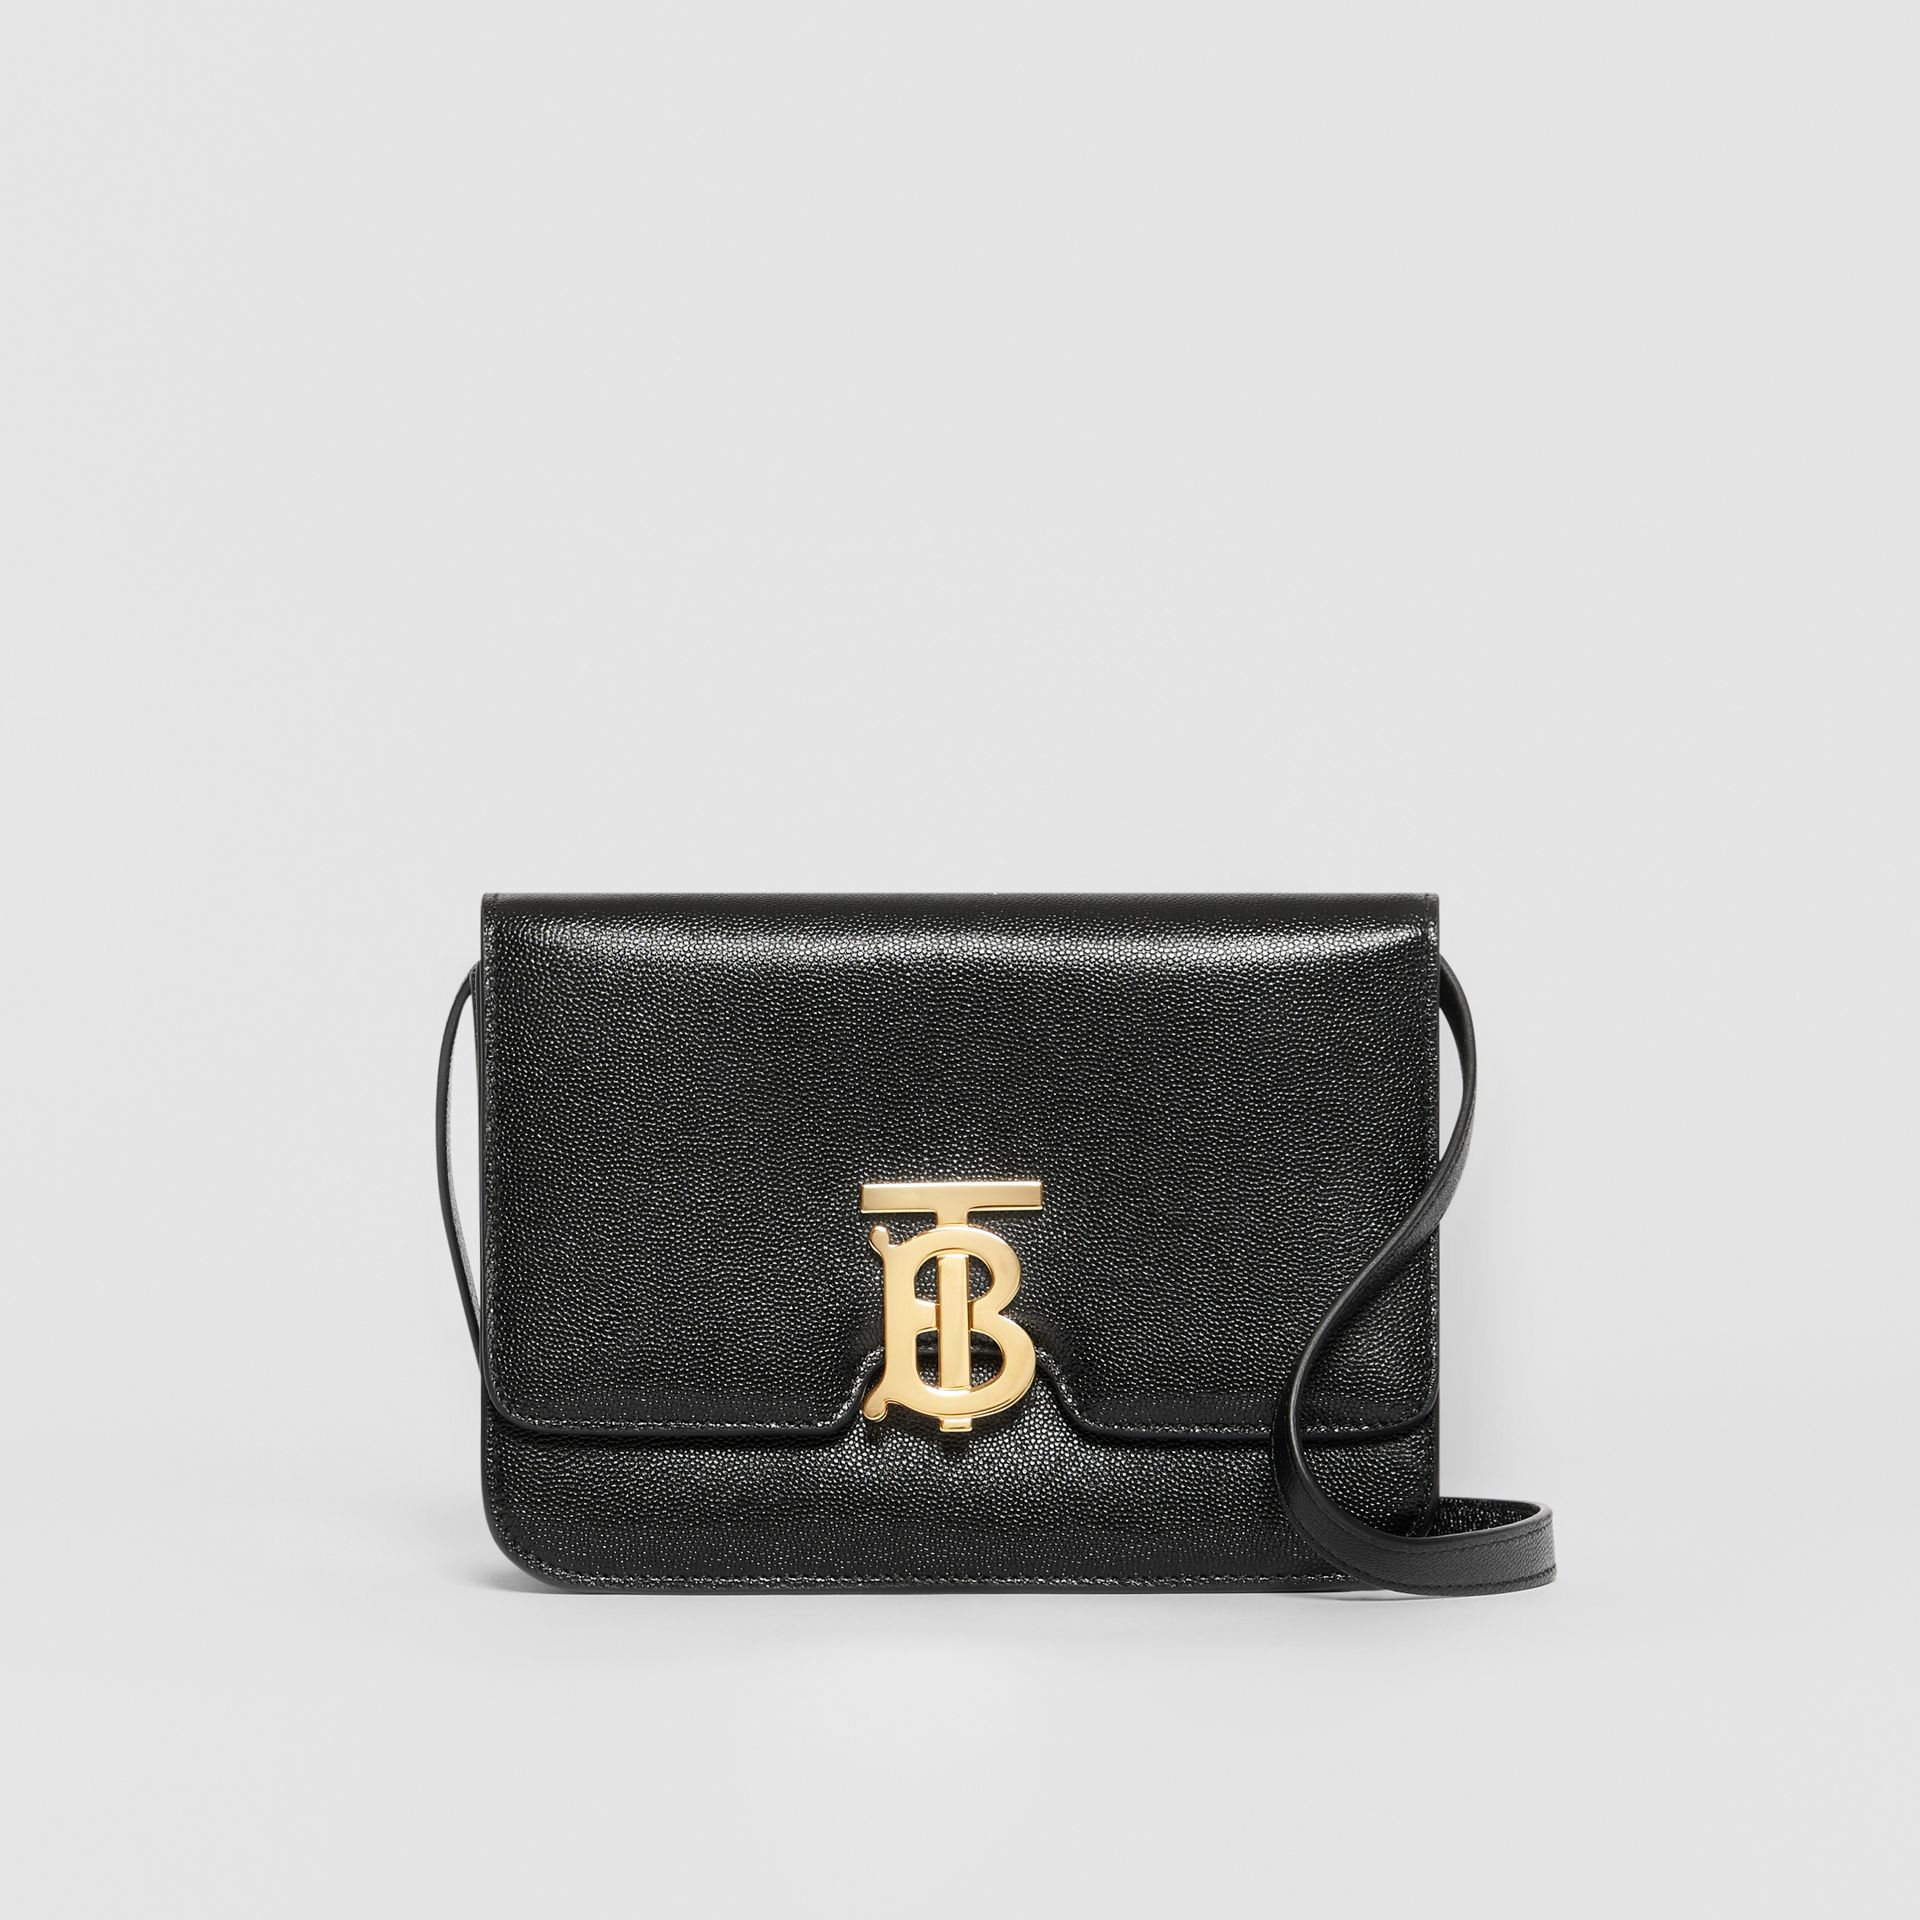 Small Grainy Leather TB Bag in Black - Women | Burberry Australia - gallery image 0